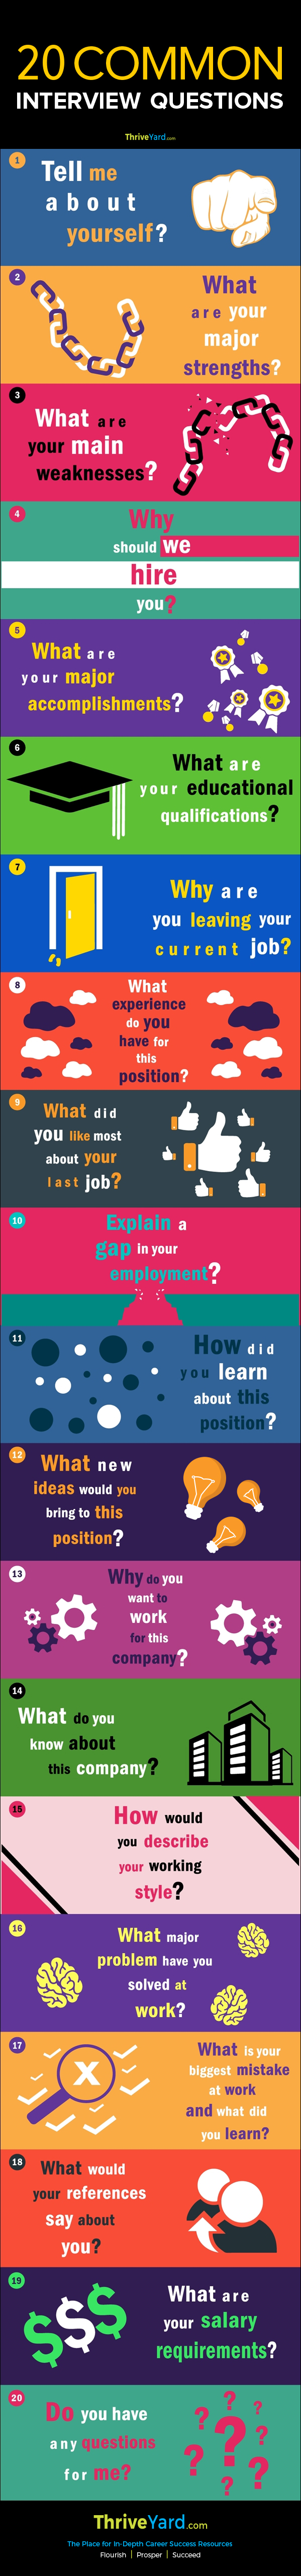 20 Common Interview Questions - Infographic